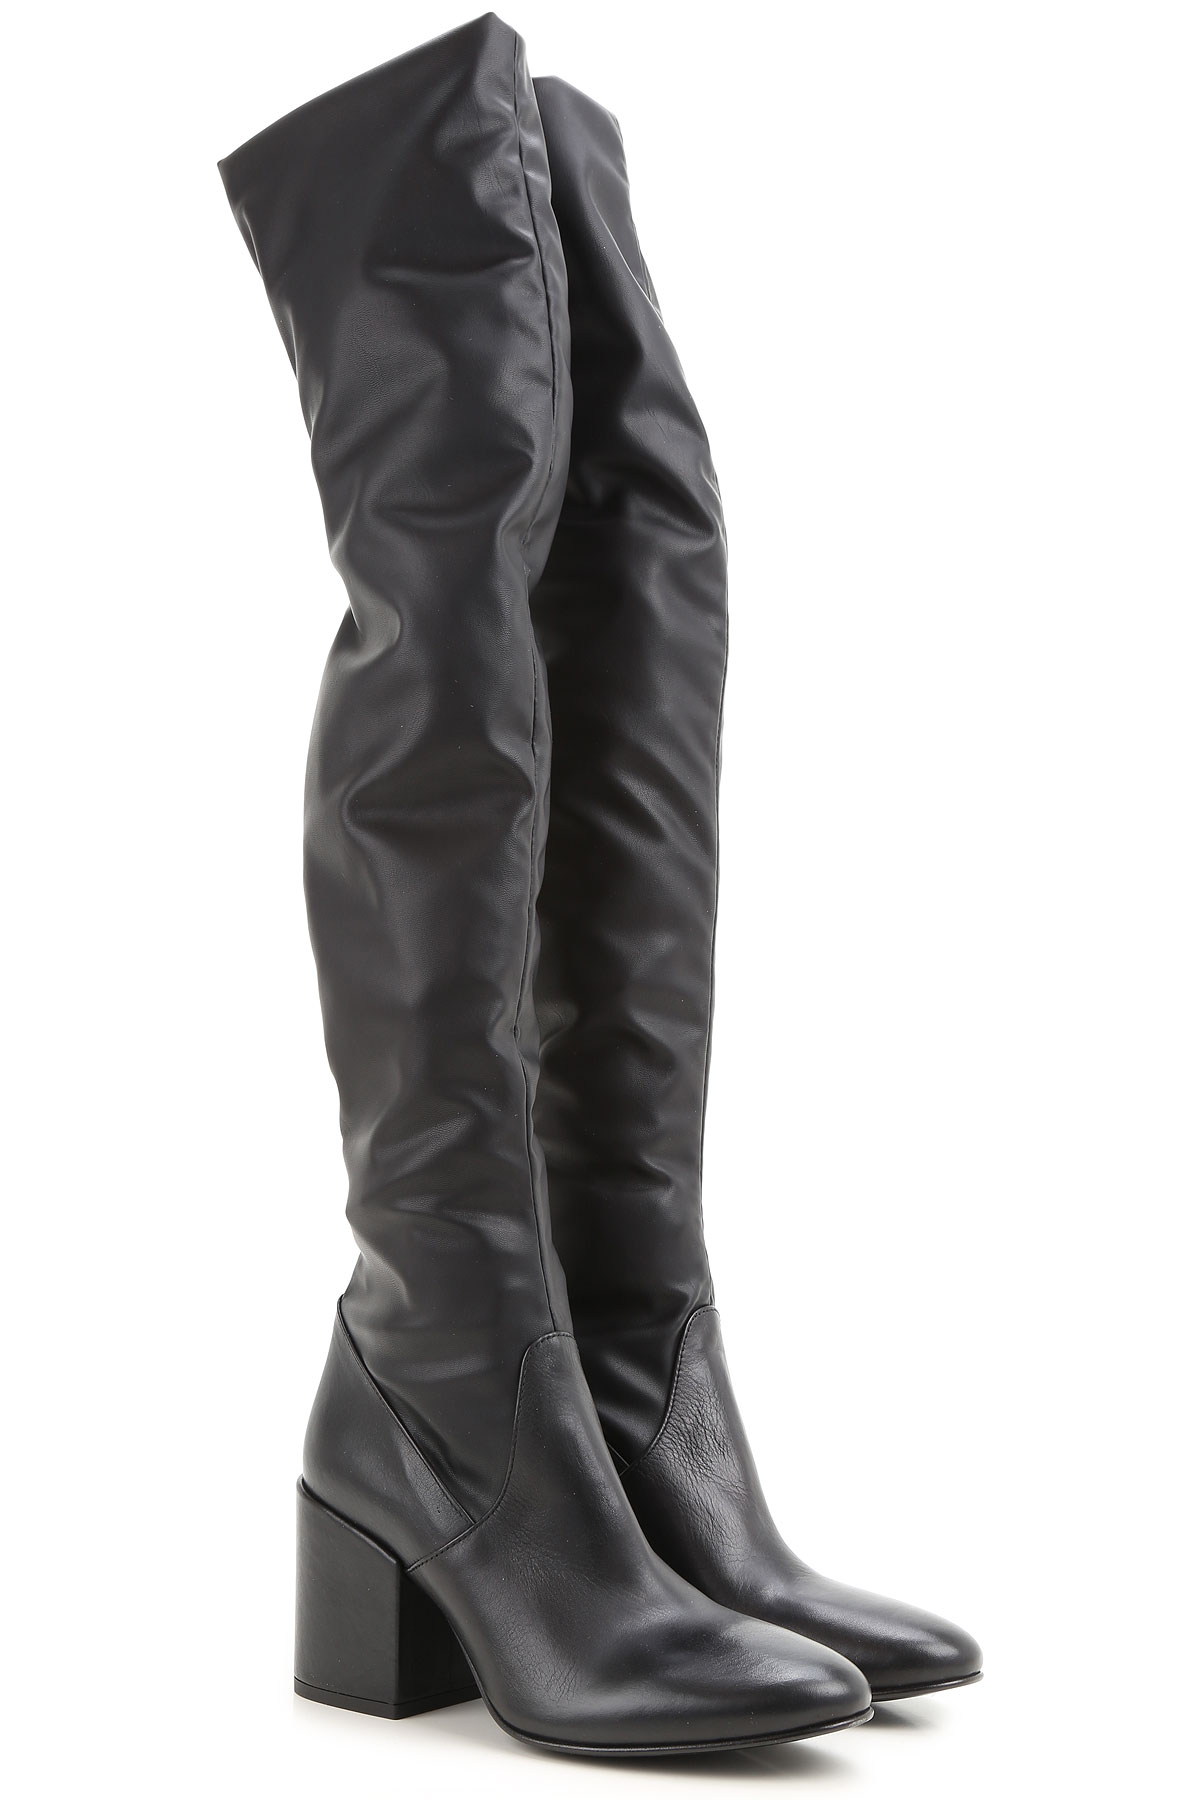 Image of Strategia Boots for Women, Booties, Black, Leather, 2017, 6 9